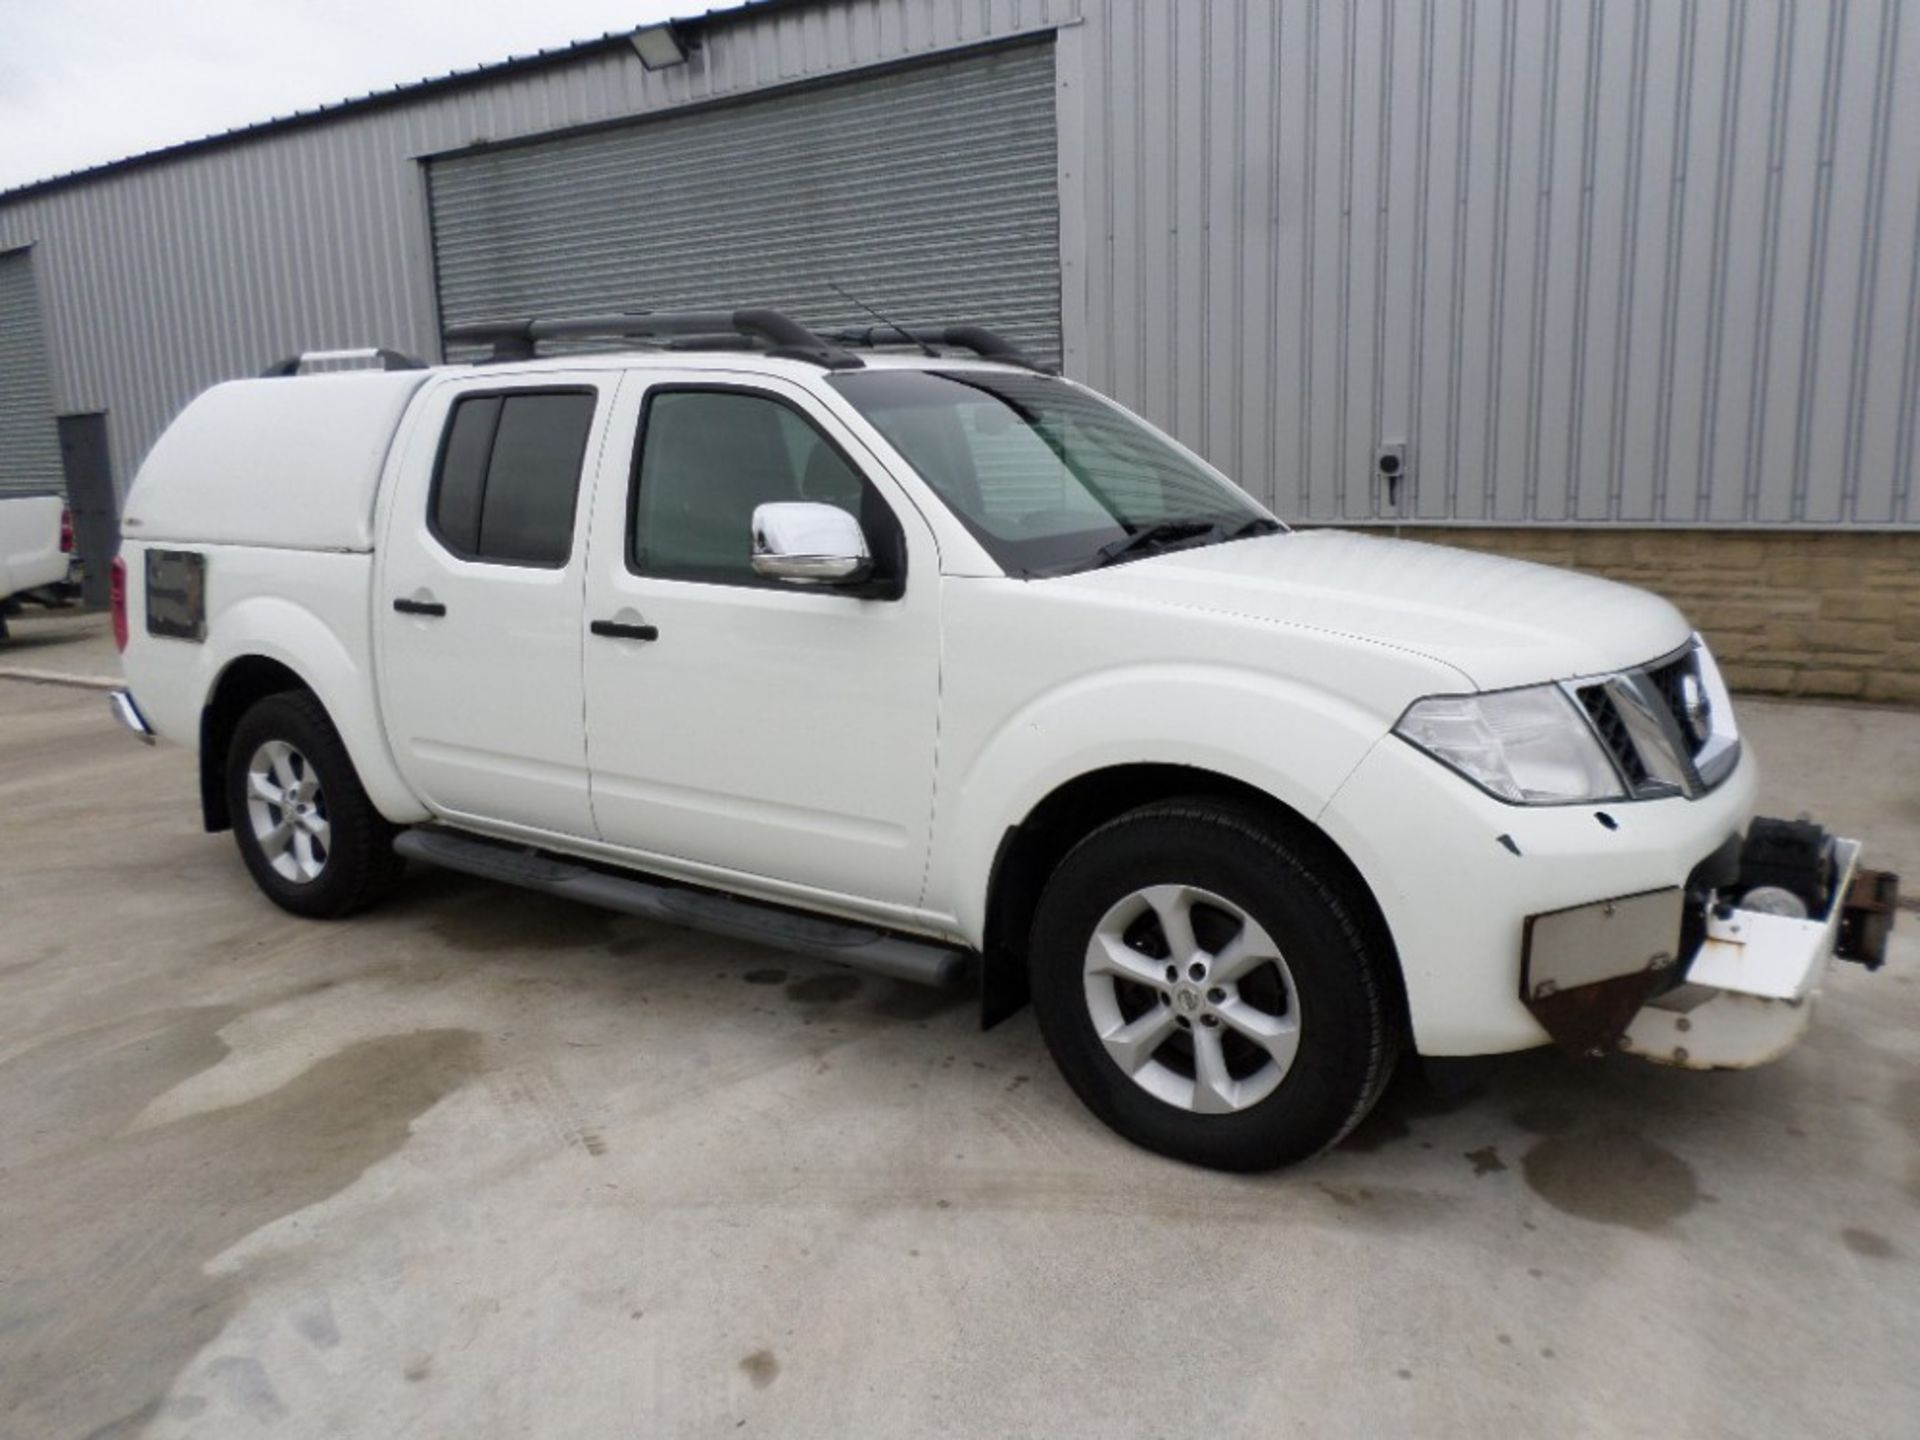 2011 NISSAN NAVARA DCI 188 TEKNA D/CAB PICKUP (LOCATION SHEFFIELD) UNREGISTERED EX MOD, 115121M ( - Image 2 of 6